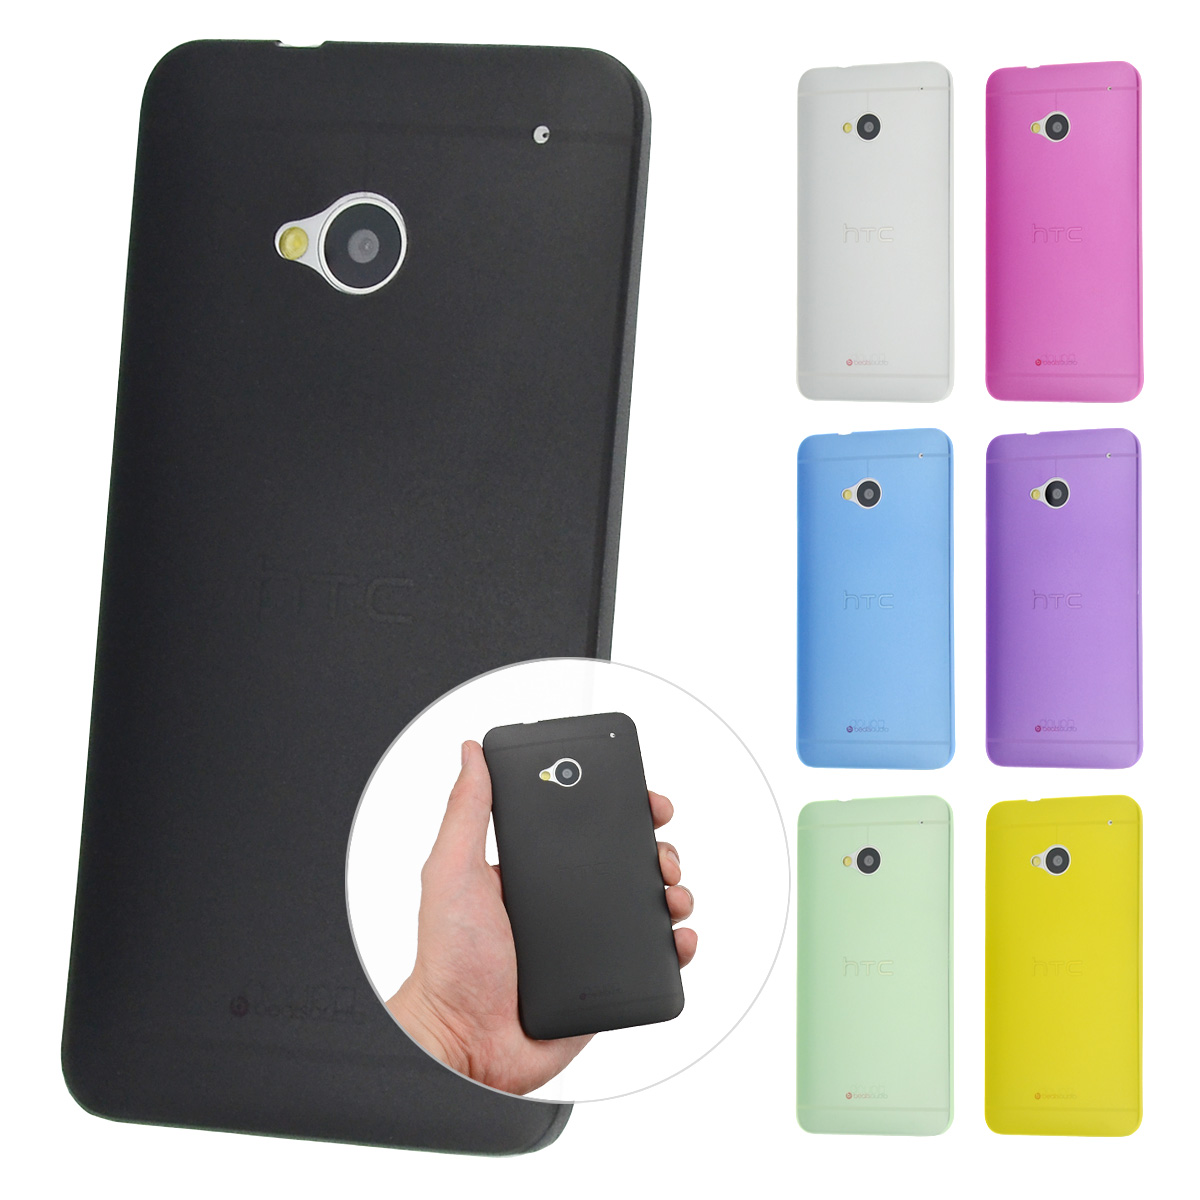 thumbnail 9 - Ultraslim-Case-HTC-One-M8-Fine-Matte-Protective-Case-Skin-Cover-Film